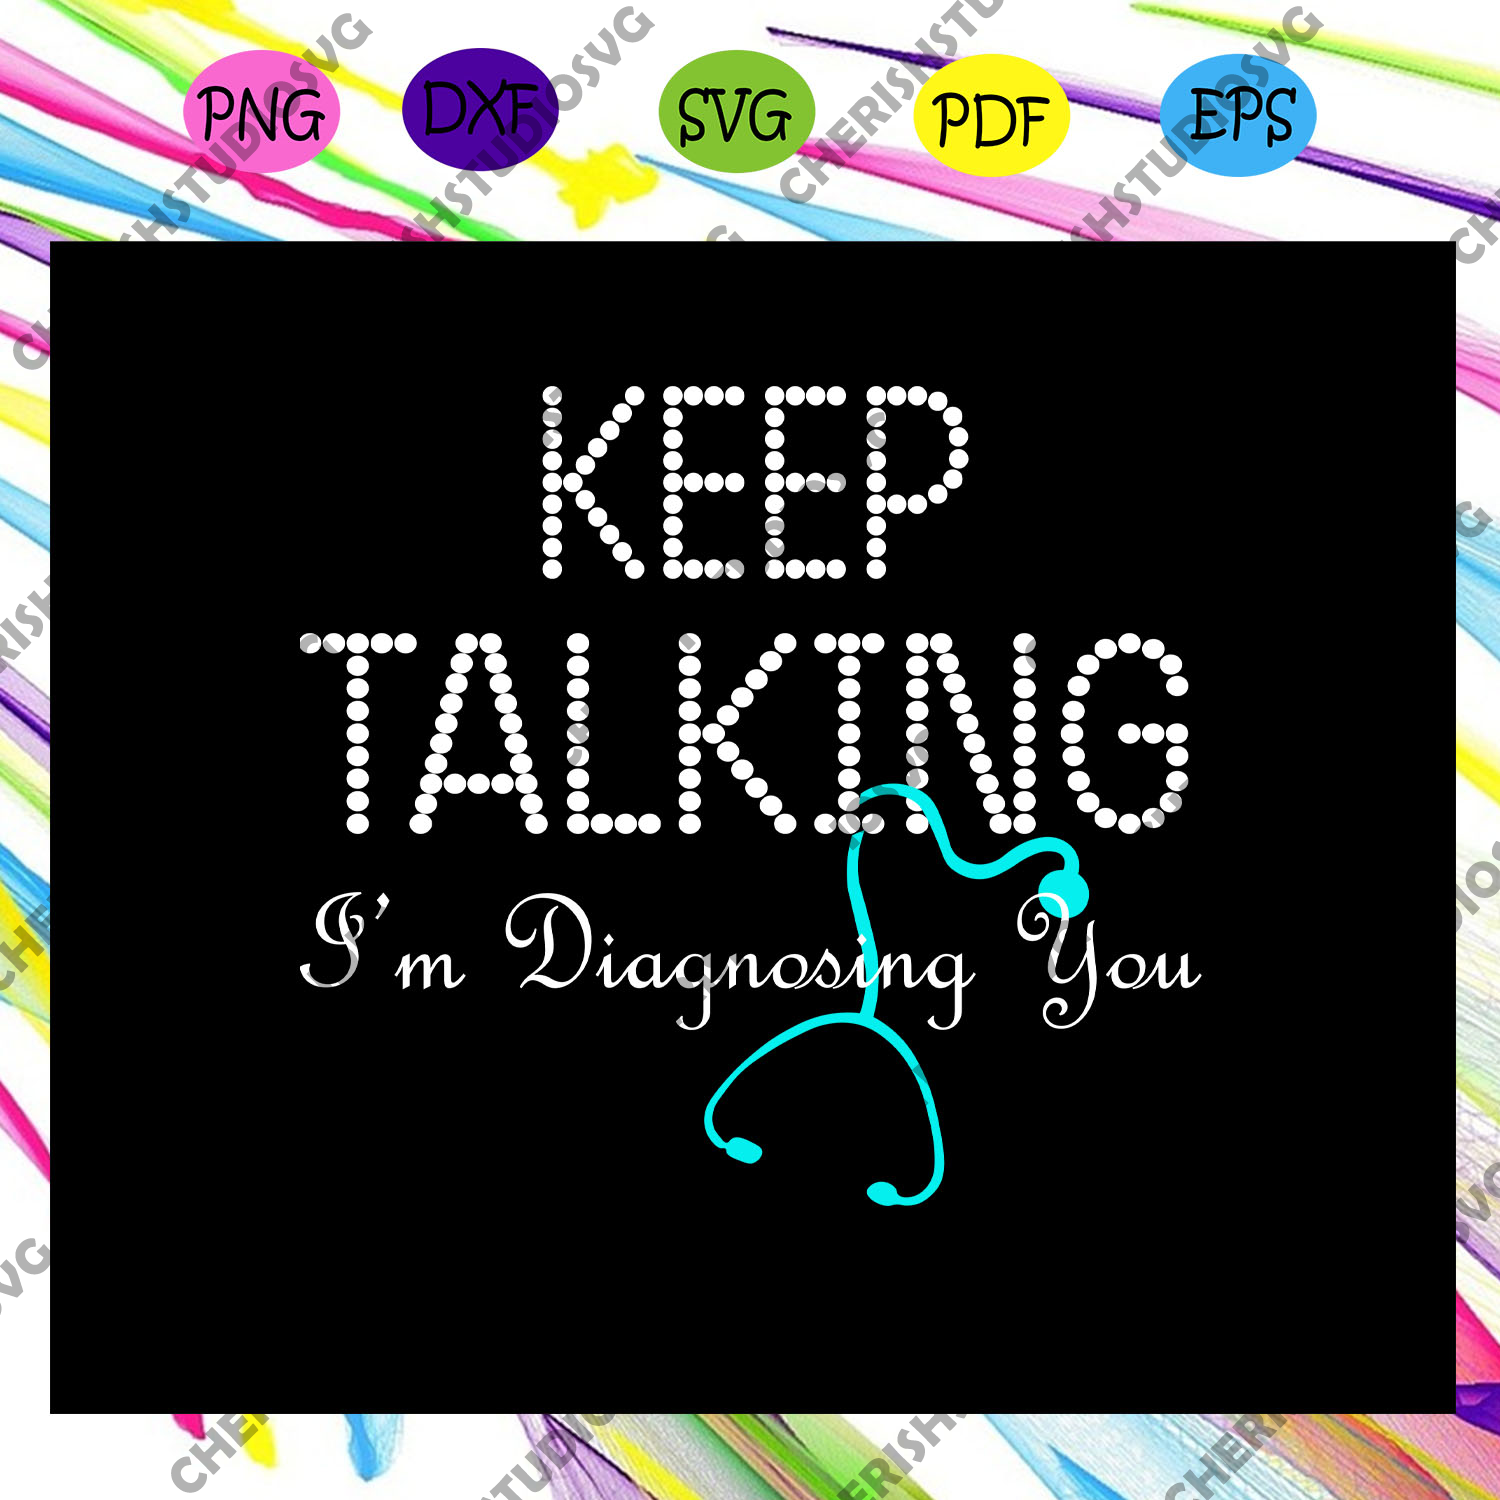 Keep talking i'm diagnosing you, nurse svg, nurse, nurse life, nurse gift, nurse birthday, nurse party, best nurse ever, funny nurse gift,trending svg, Files For Silhouette, Files For Cricut, SVG, DXF, EPS, PNG, Instant Download